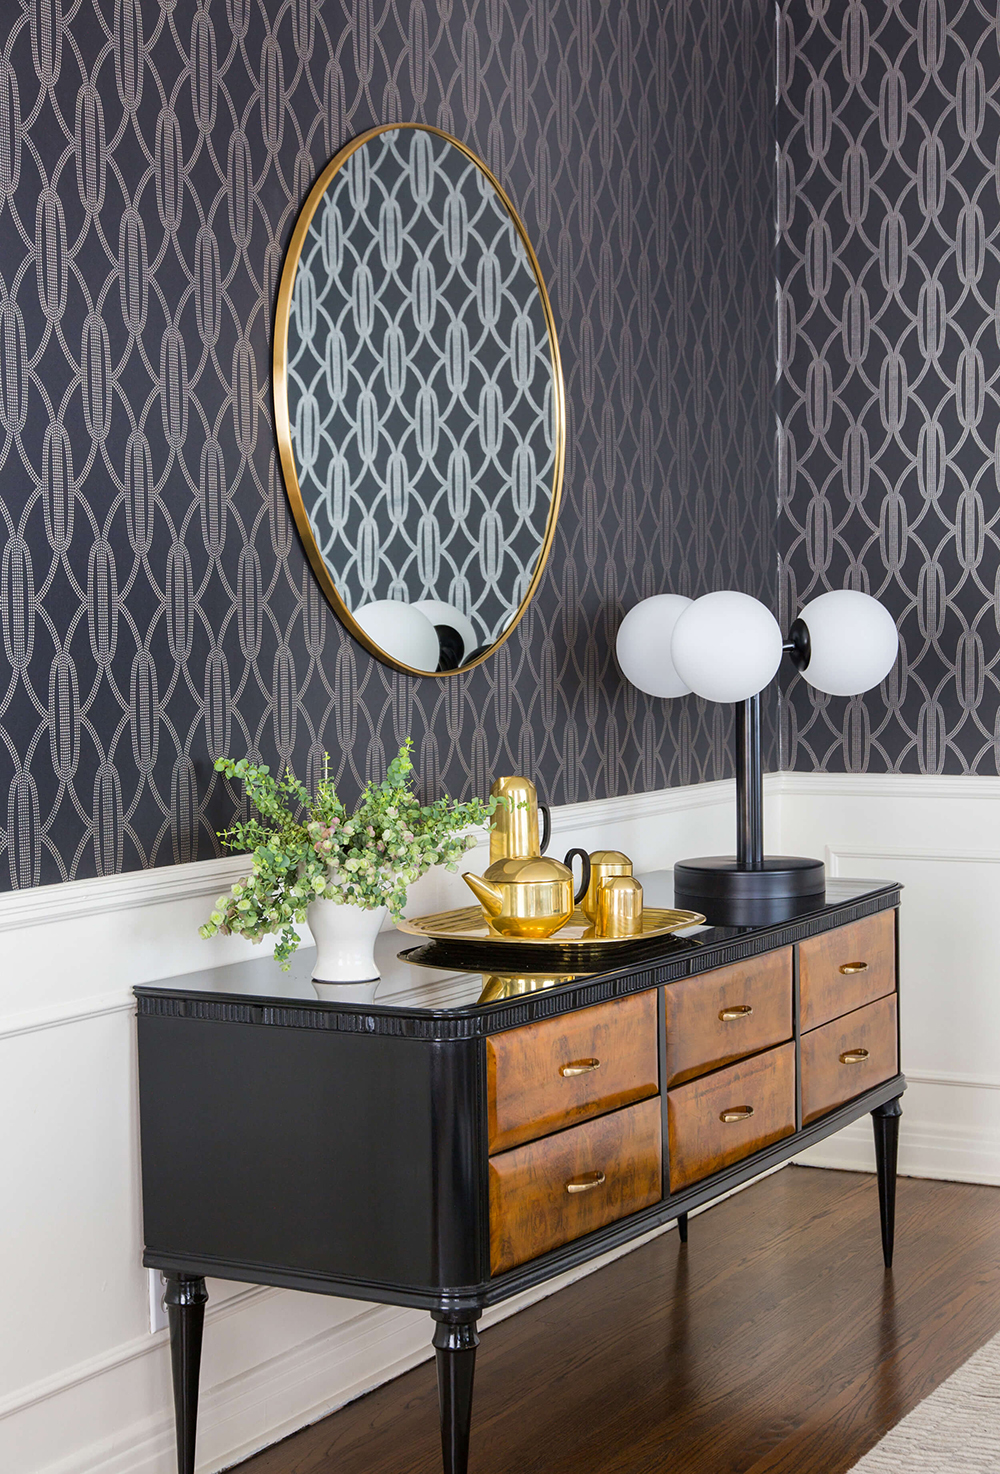 Candle Wall Sconce Dining Room